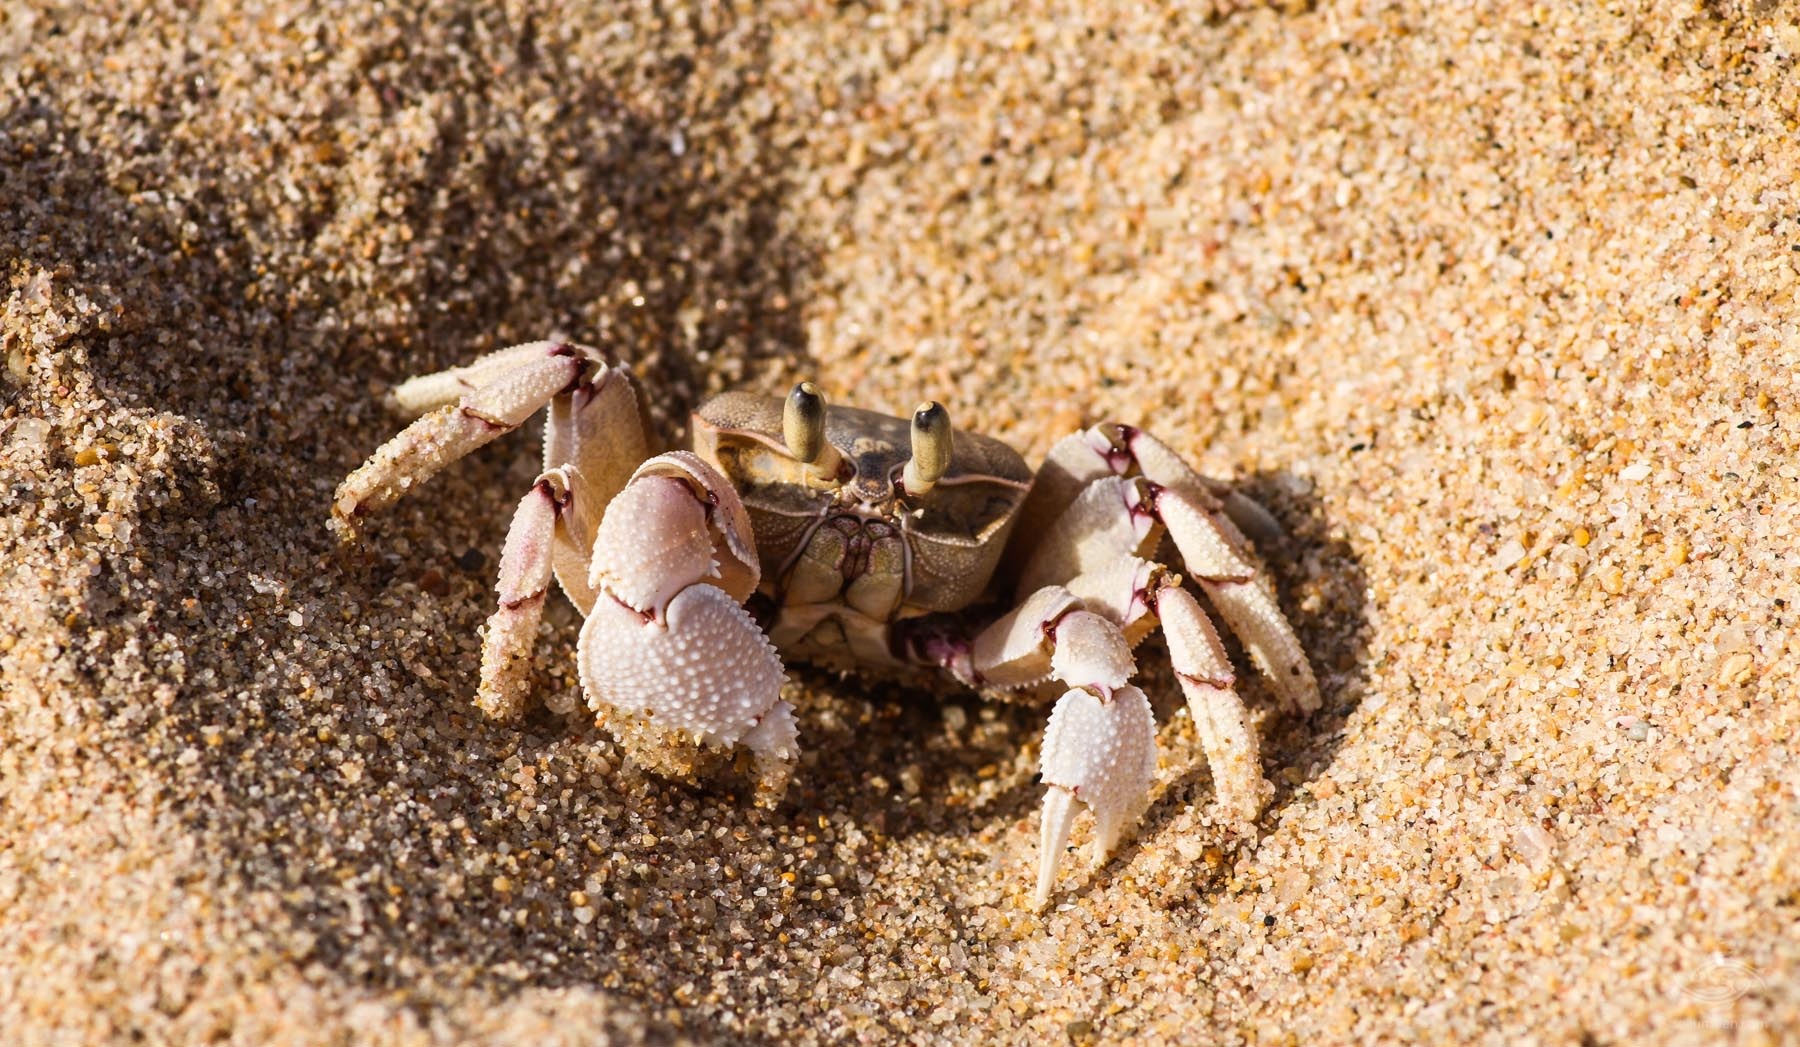 A pink ghost crab Ocypode ryderi